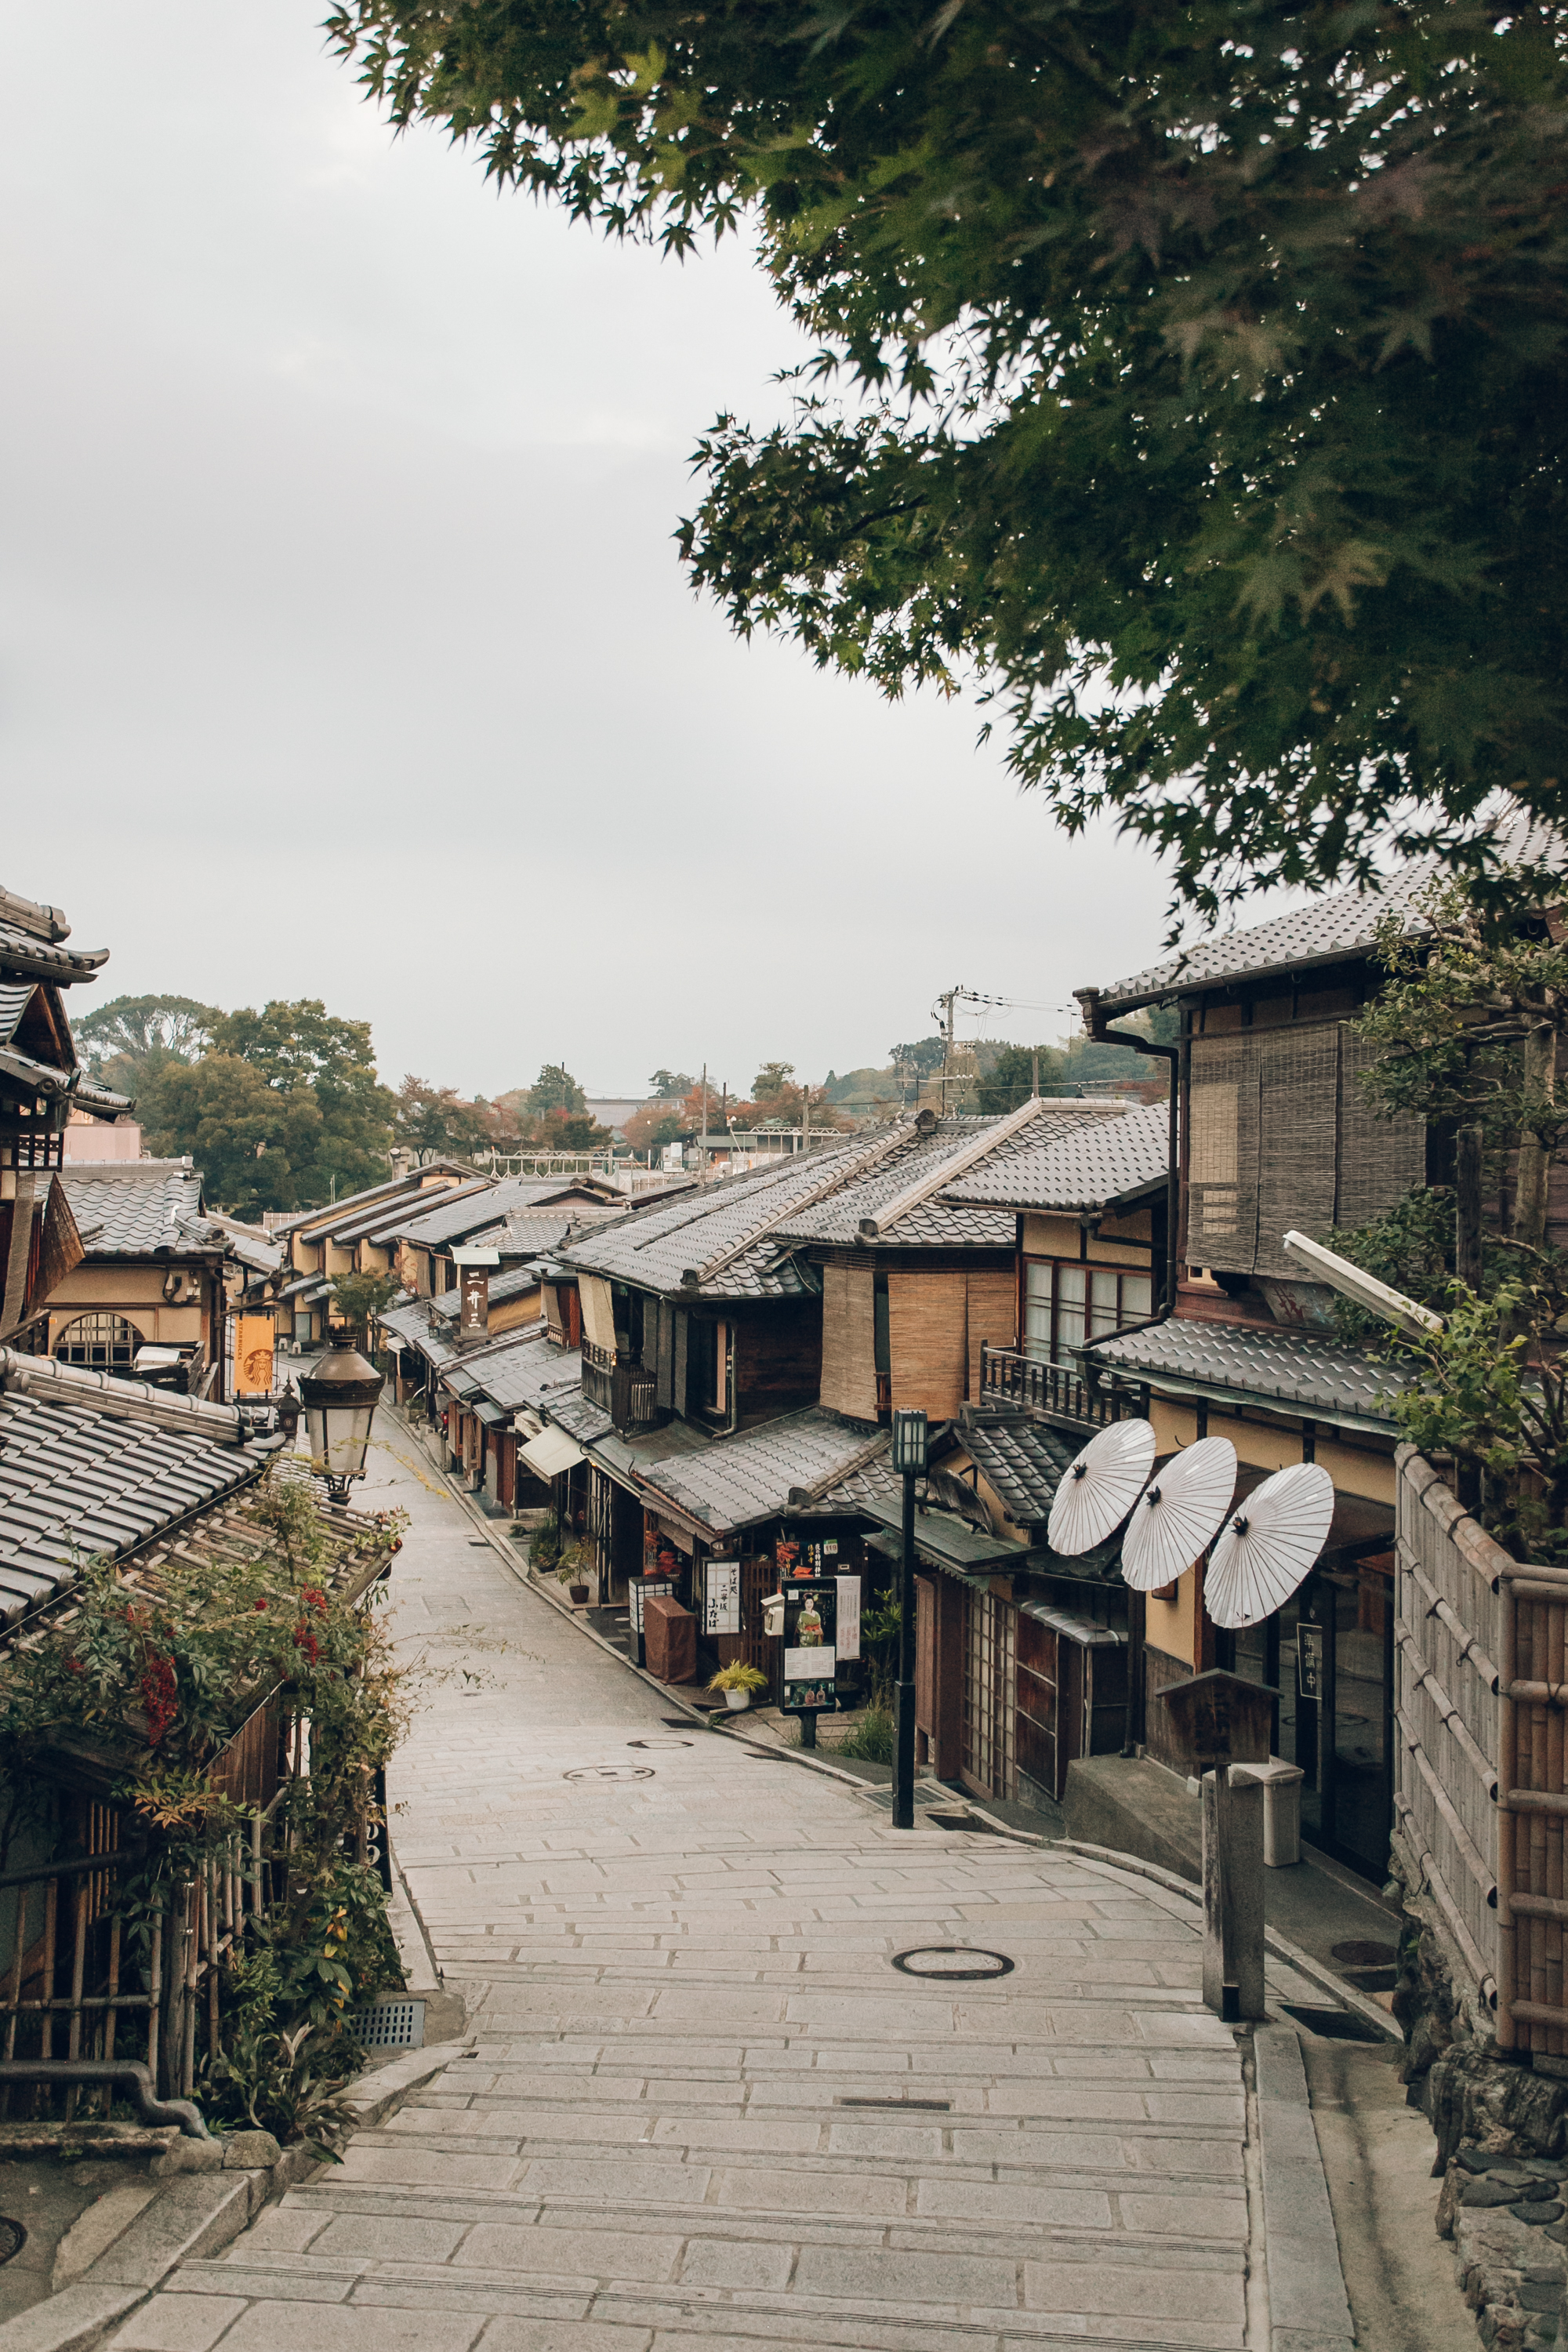 Haarkon in Kyoto, Japan